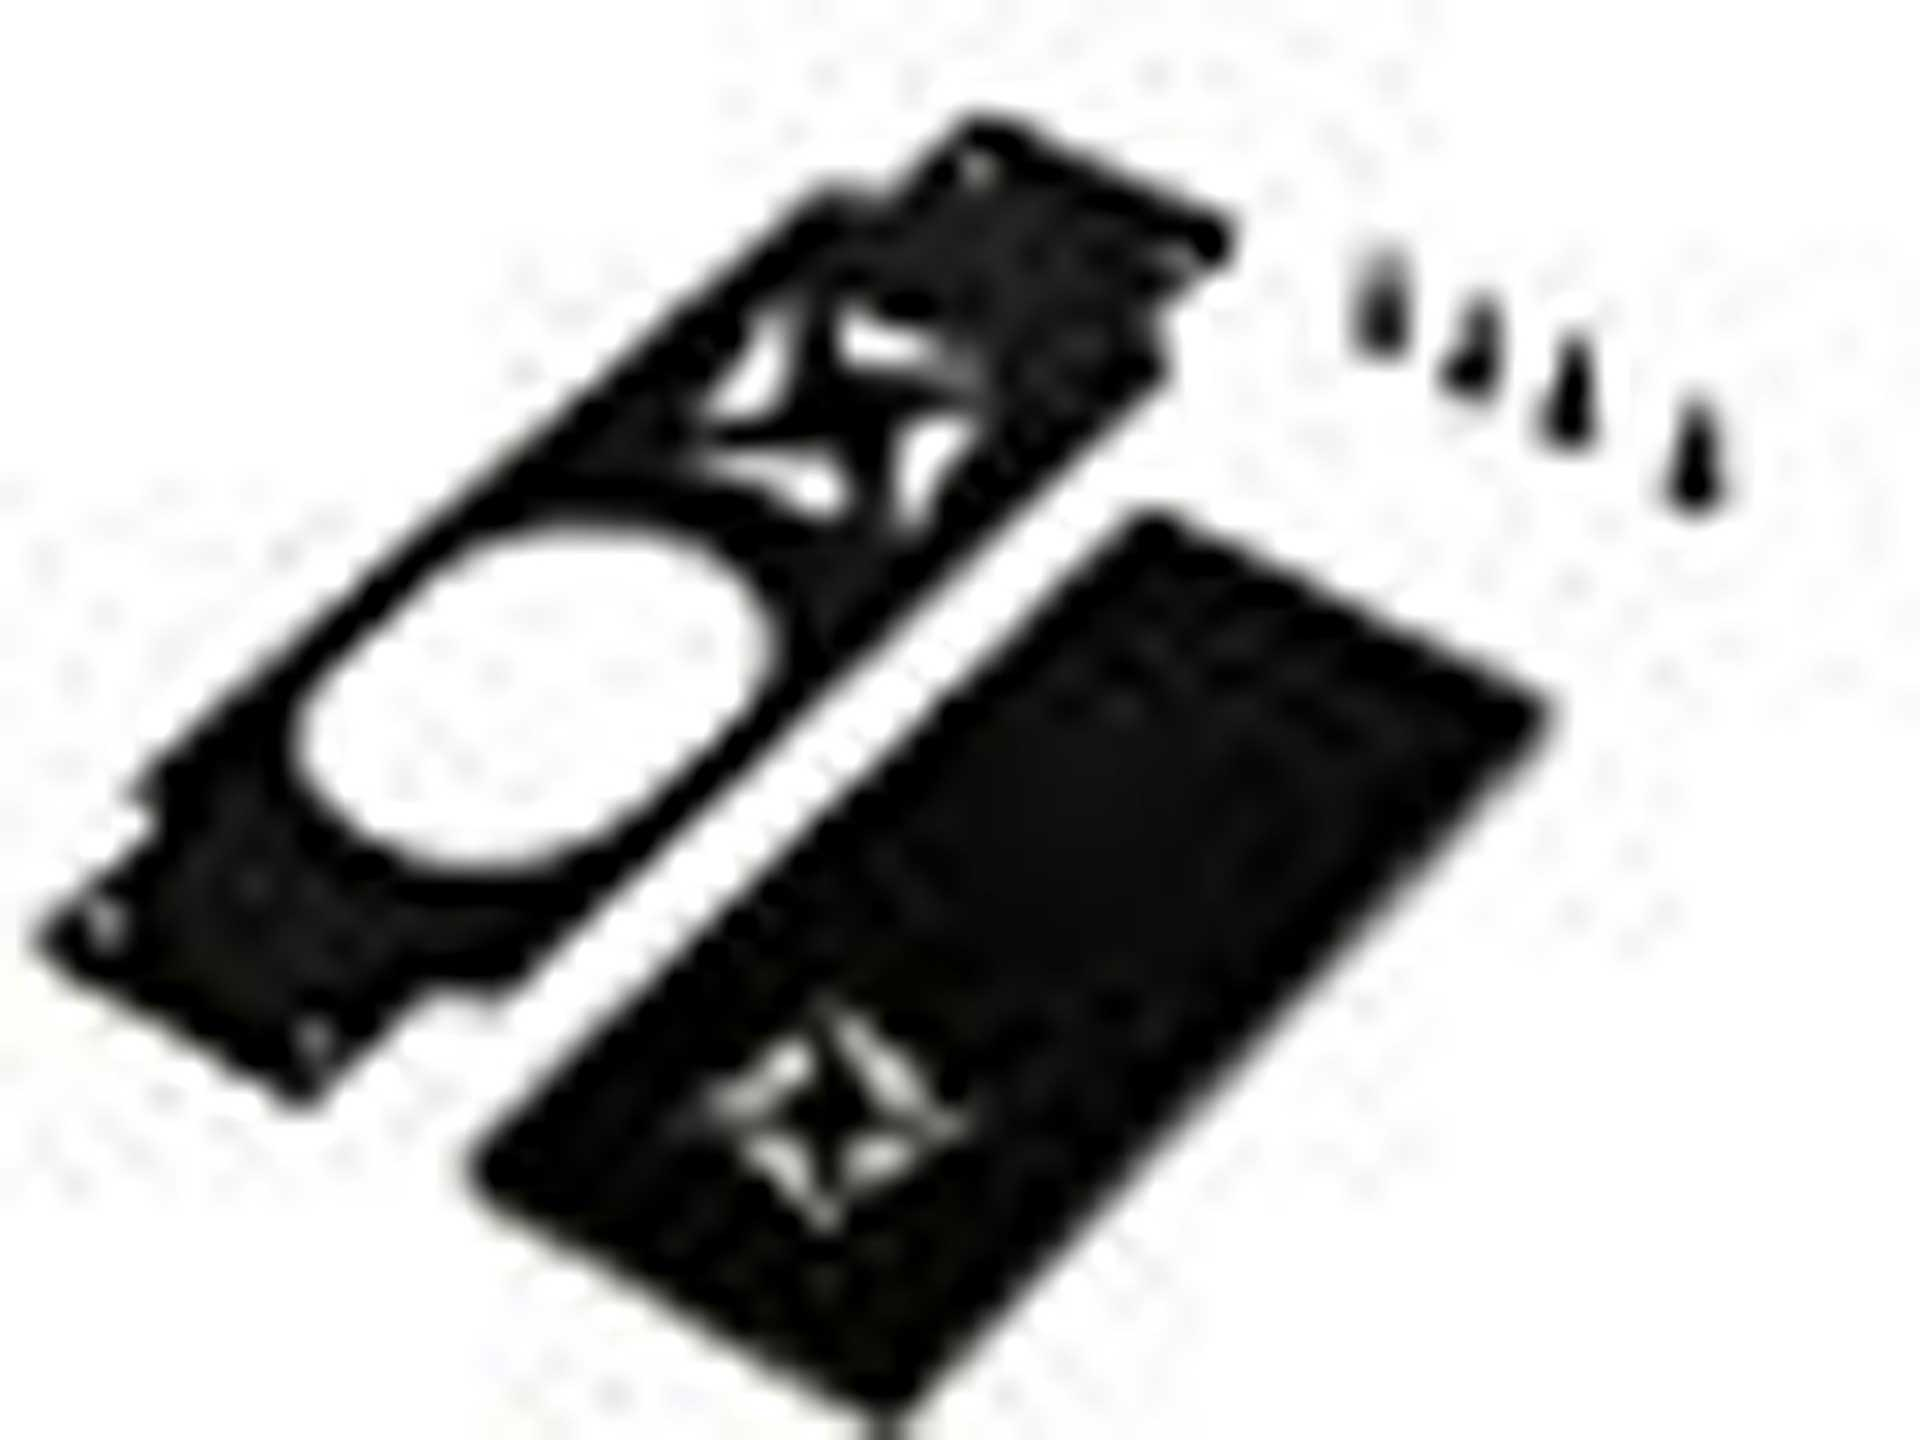 BLADE BASEPLATE FUSION 360 BATTERY UND GYRO MOUNT